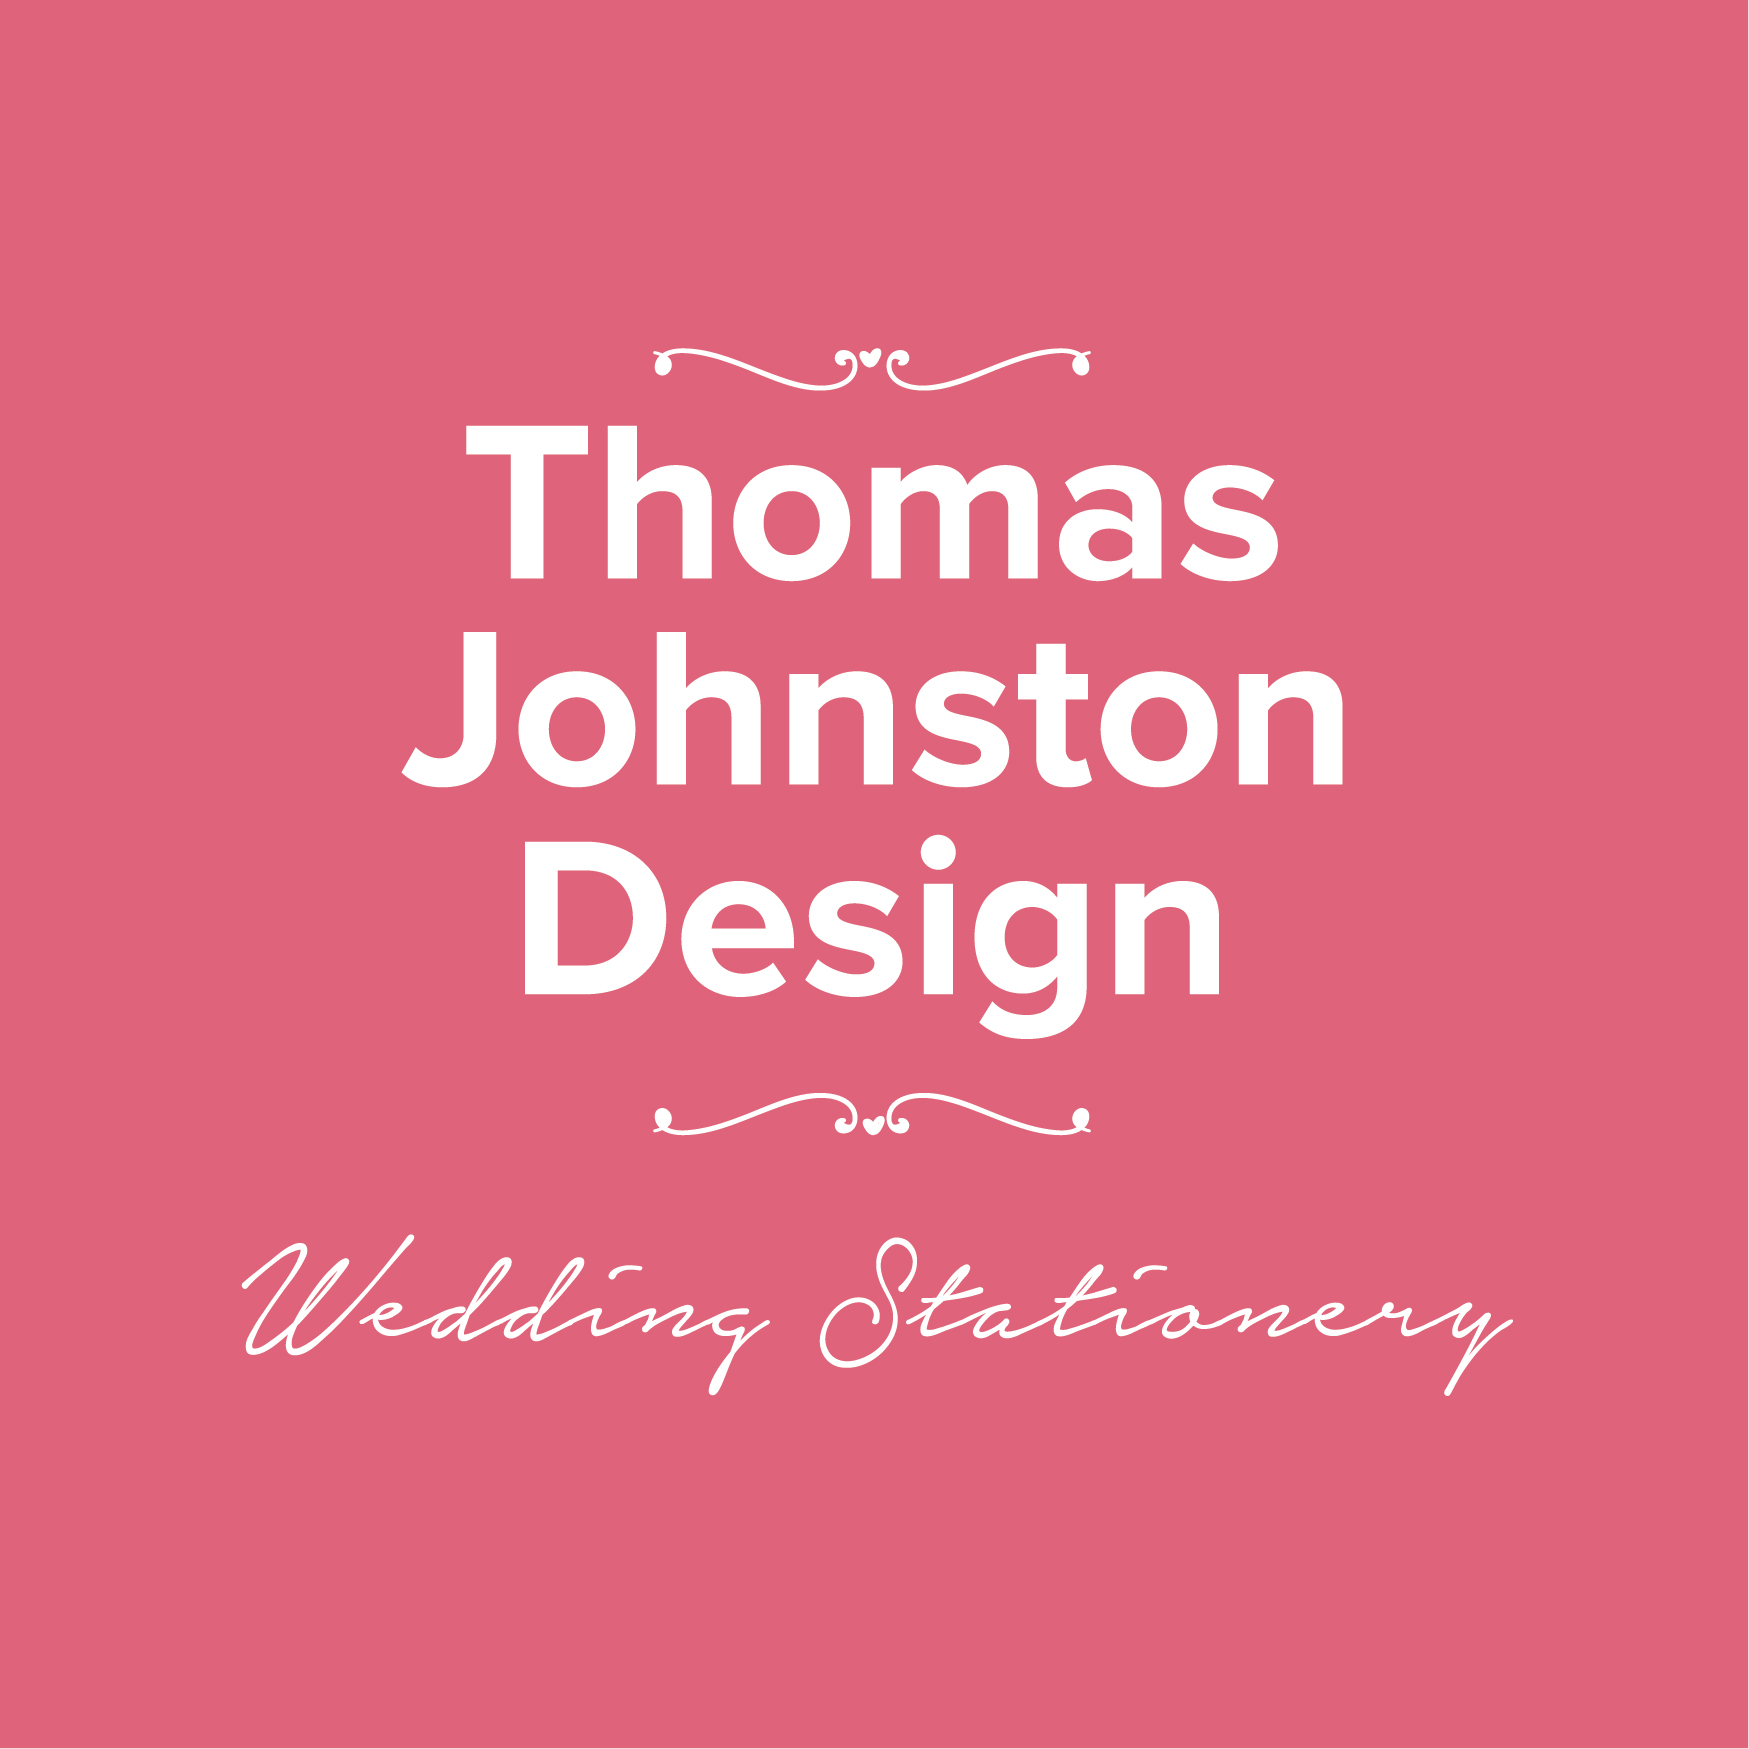 Based in Co. Donegal and serving couples all over Ireland, Thomas Johnston Design specialise in designing personalised characters to resemble the people getting married, their children or even their pets!  LEARN MORE